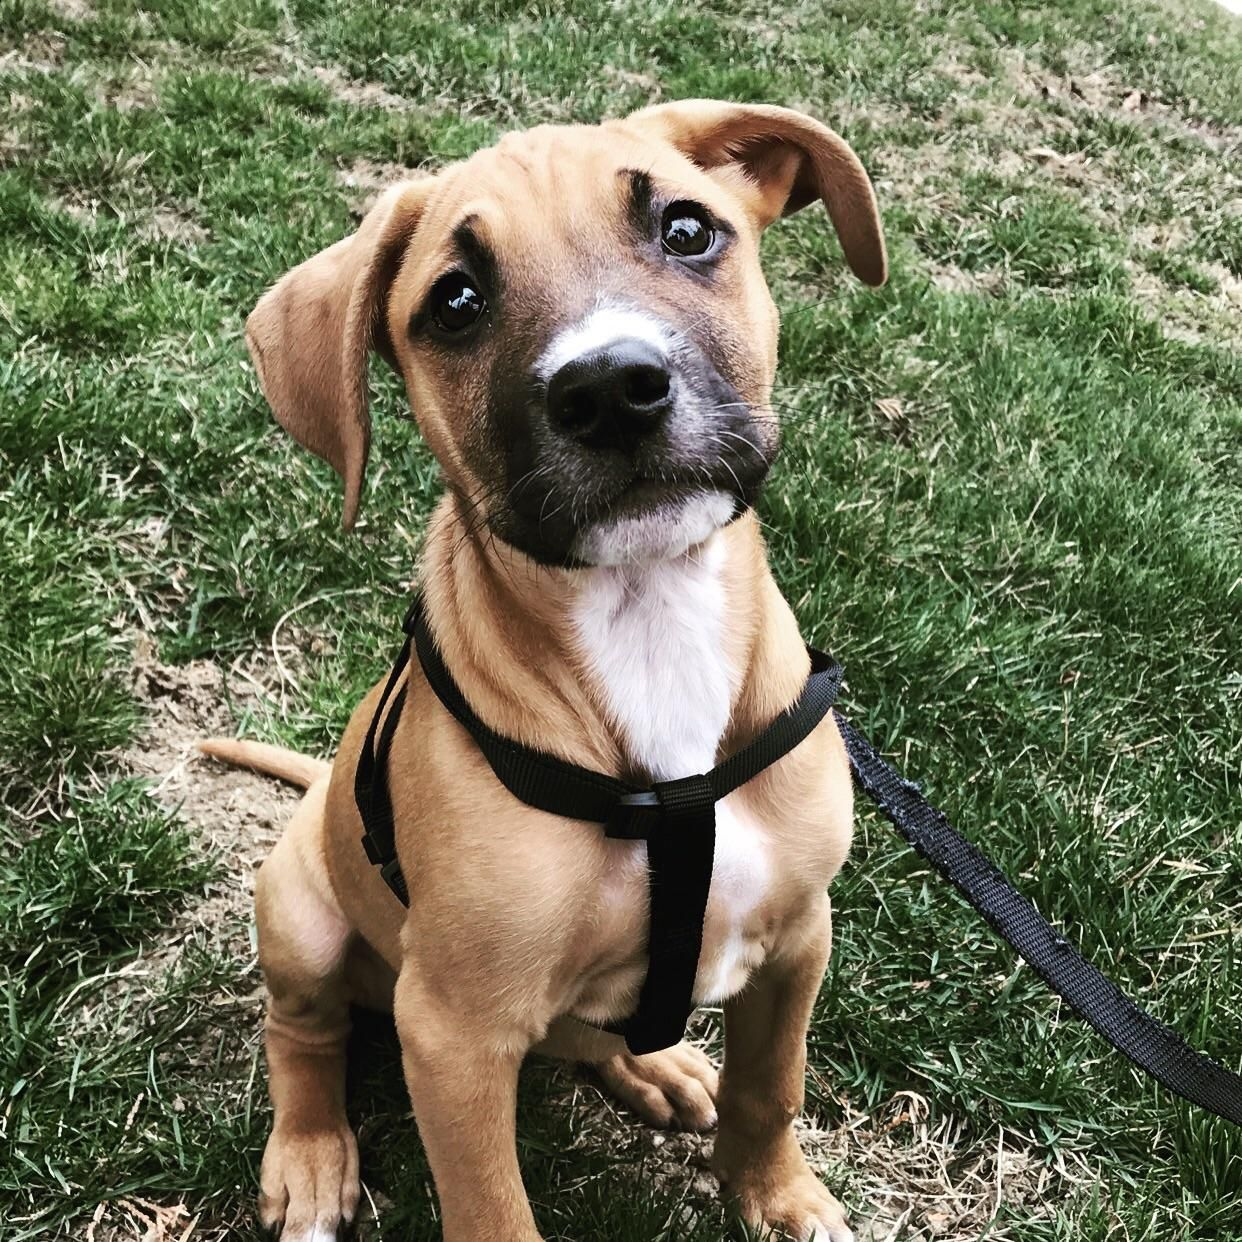 Do You Think He S A Boxer Mix This Is My 3 1 2 Month Old Puppy Everyday I Ve Been Asked What Kind Of Dog He His And The What Kind Of Dog